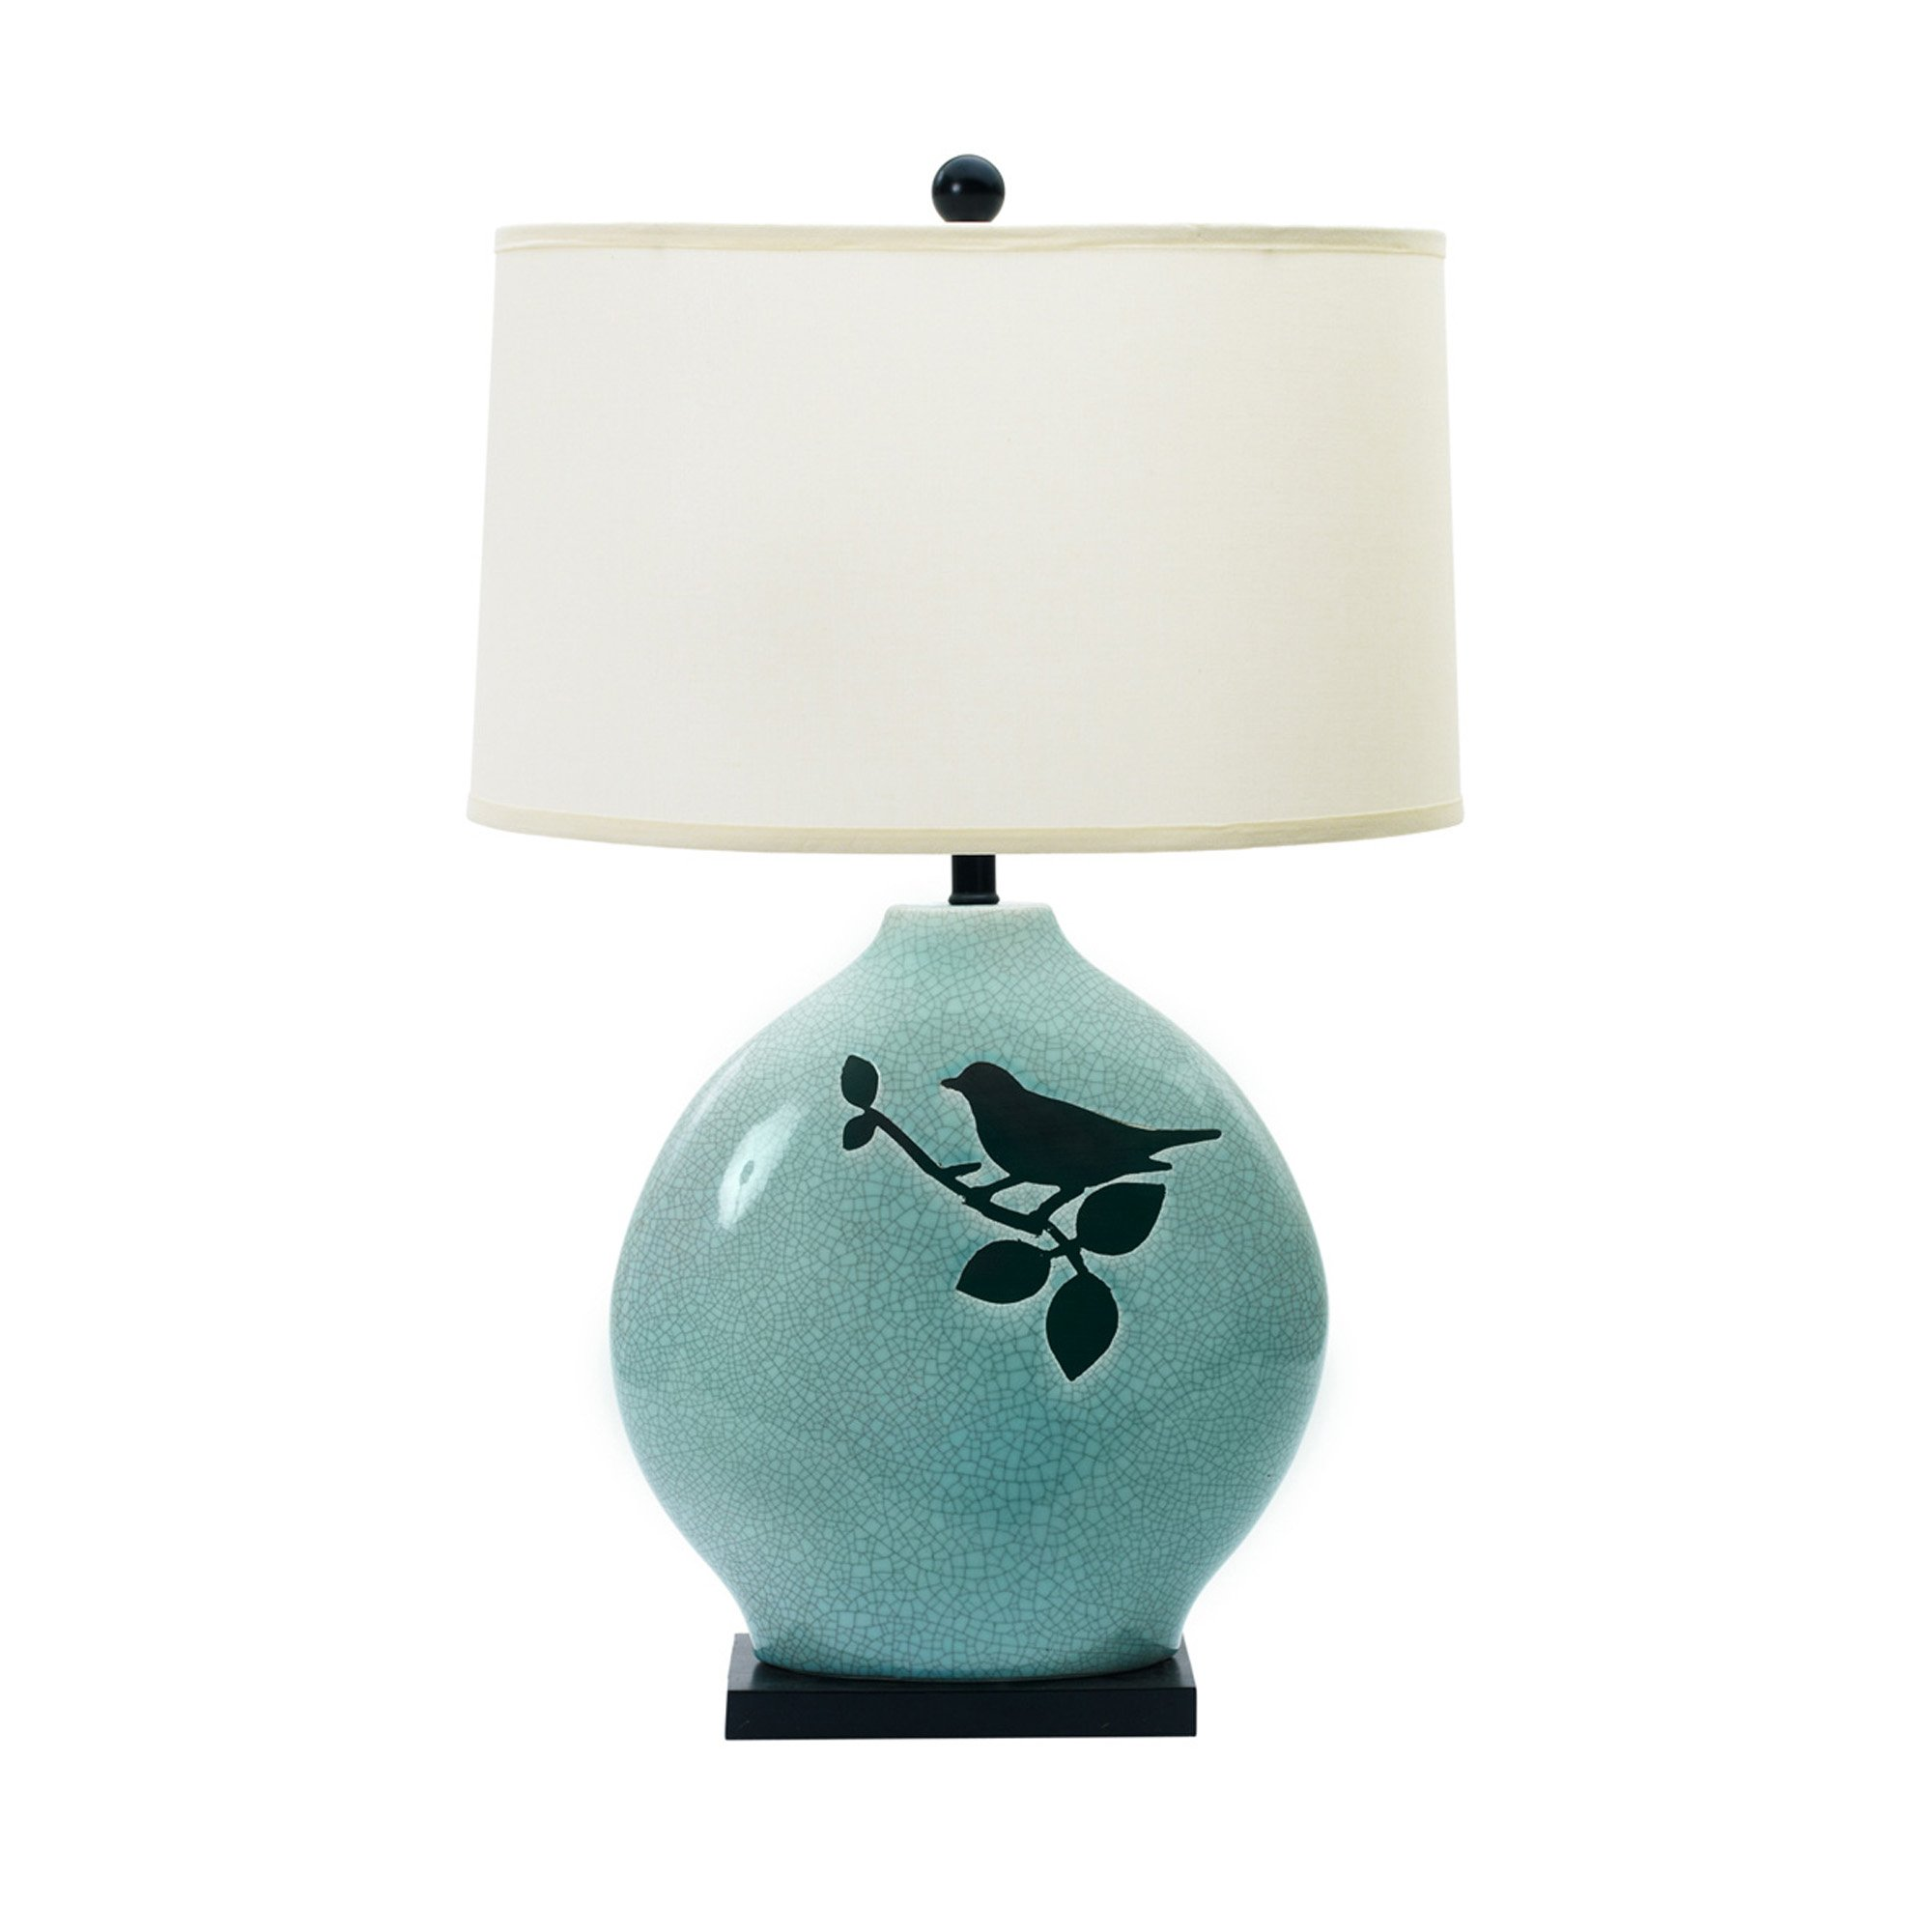 Fangio Lighting 8783 Traditional Ceramic Table Lamp with Bird and Black Base, 30-Inch, Spa Blue Crackle by Fangio Lighting (Image #1)